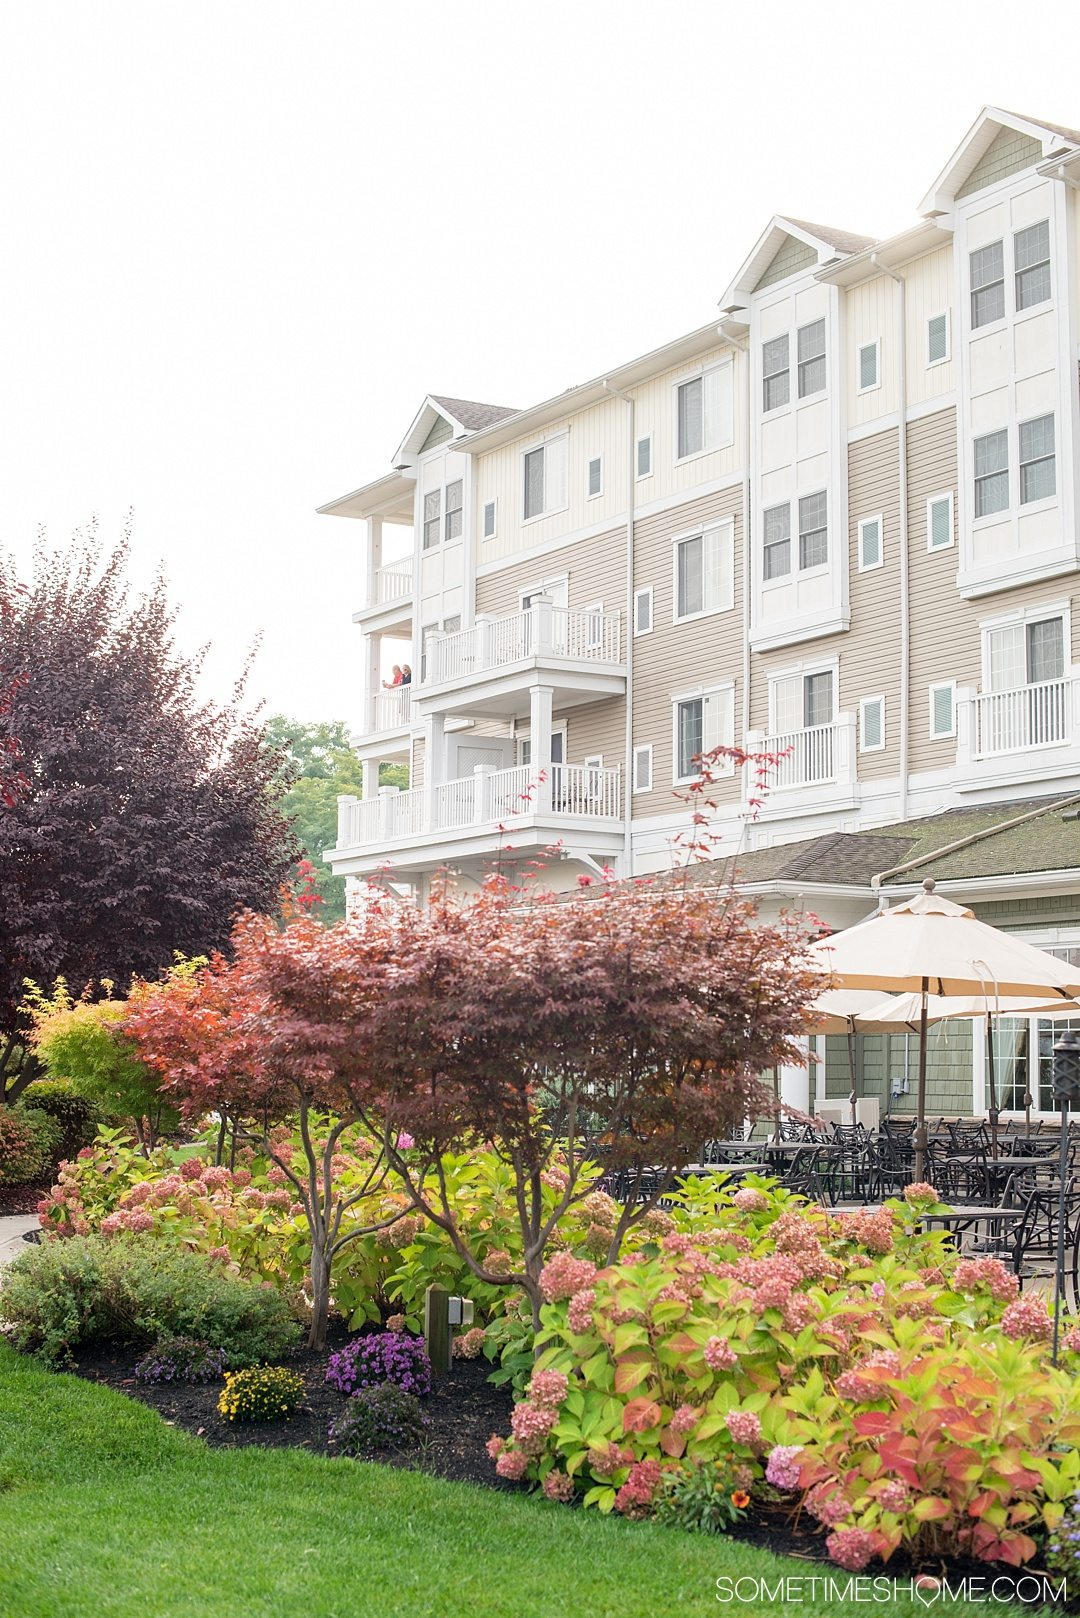 Looking for Hotels in the Finger Lakes area of New York? We share where to stay for a weekend getaway or road trip to the area. This waterfront lodging will be perfect for your vacation, as it's very close to many things to do, from wineries, to Watkins Glen State Park with its beautiful waterfalls, to Seneca Lake. Click through for a review of the Harbor Hotel in Watkins Glen, with detailed photos and information for this picturesque hotel. #FingerLakes #WatkinsGlenStatePark